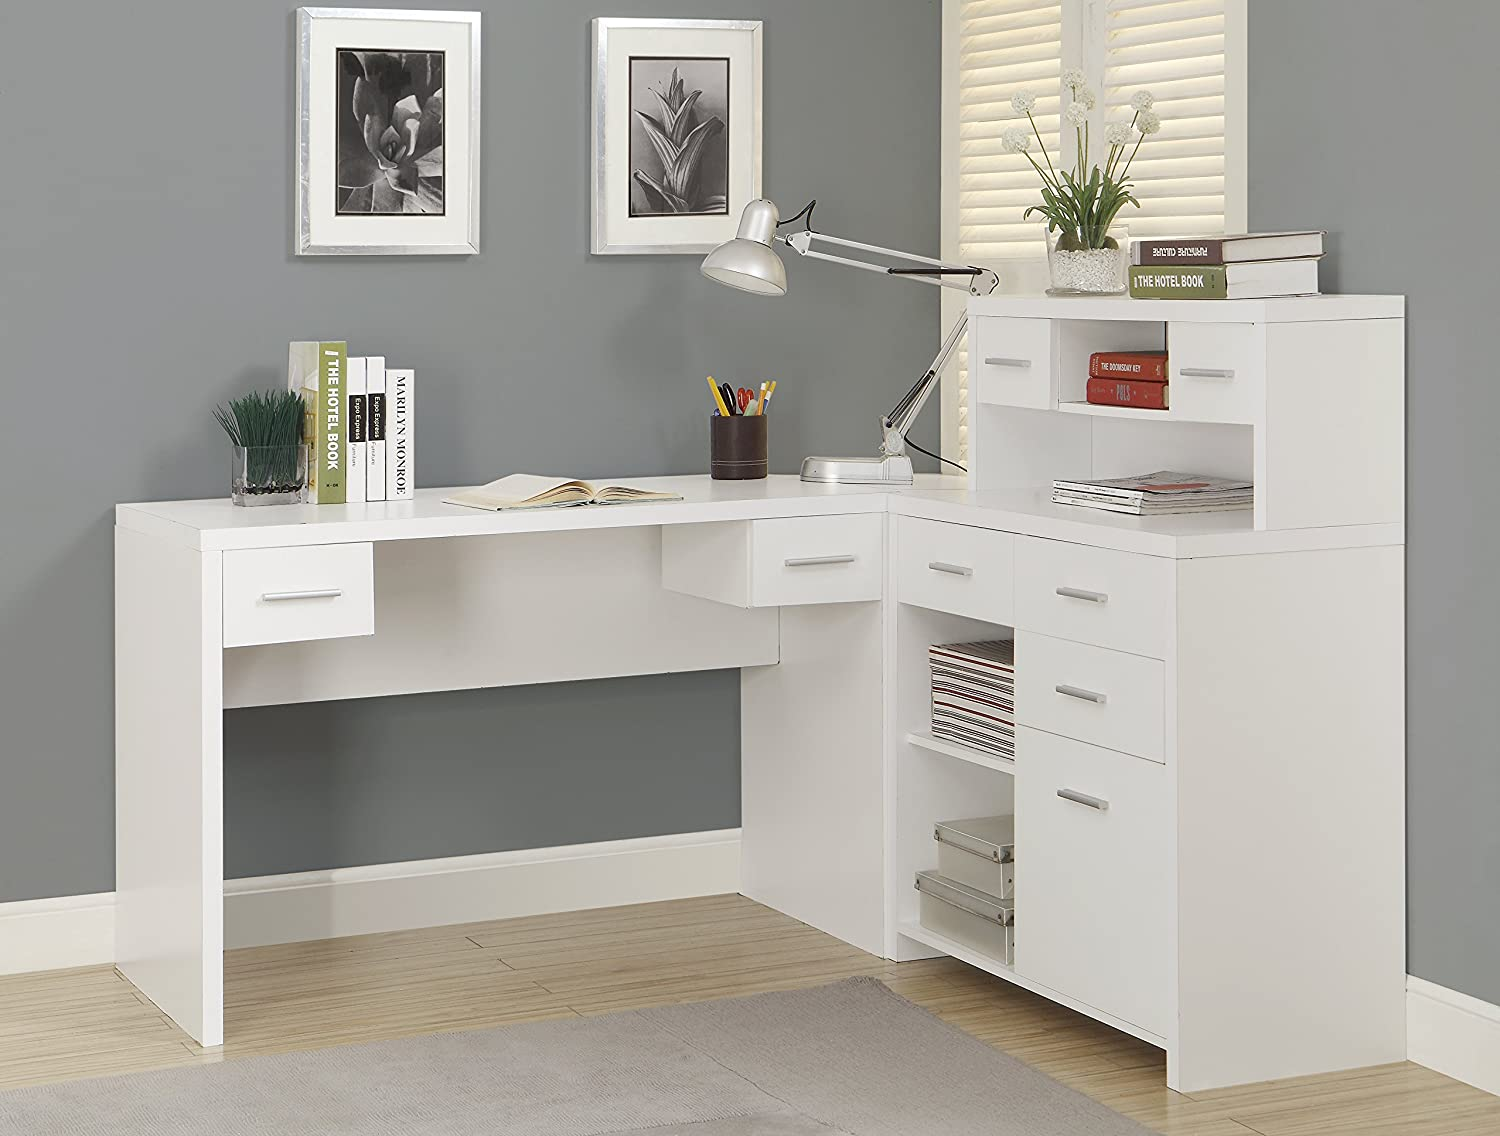 Amazon Monarch Hollow Core L Shaped Home Office Desk White Kitchen Dining